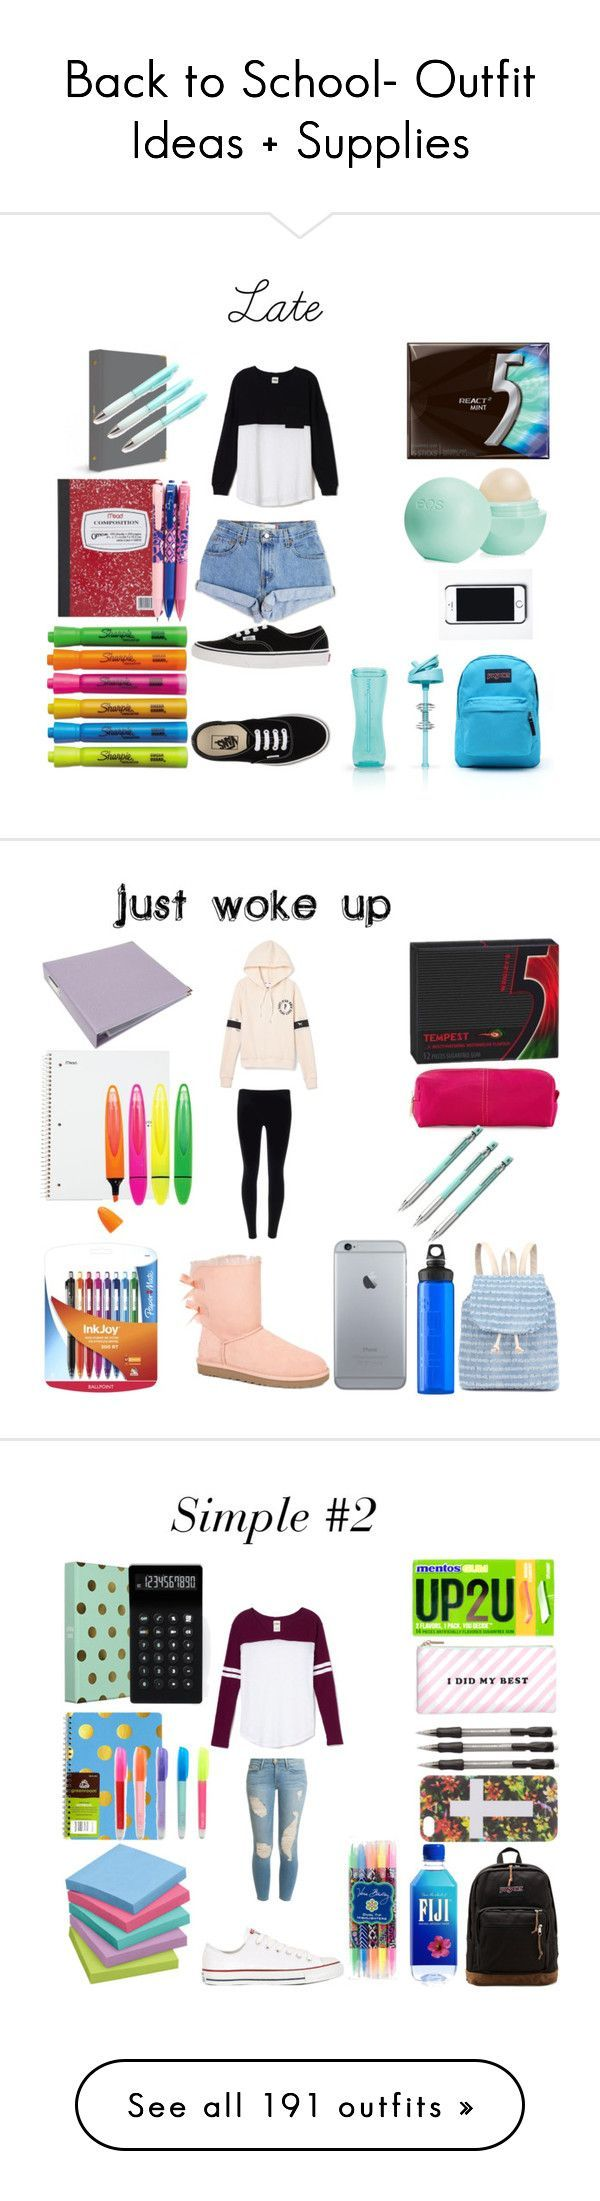 """""""Back to School- Outfit Ideas + Supplies"""" by bubbles-a ❤ liked on Polyvore featuring Victoria's Secret PINK, Levi's, Vans, Eos, JanSport, Free People, Sharpie, Vera Bradley, UGG Australia and Neiman Marcus"""